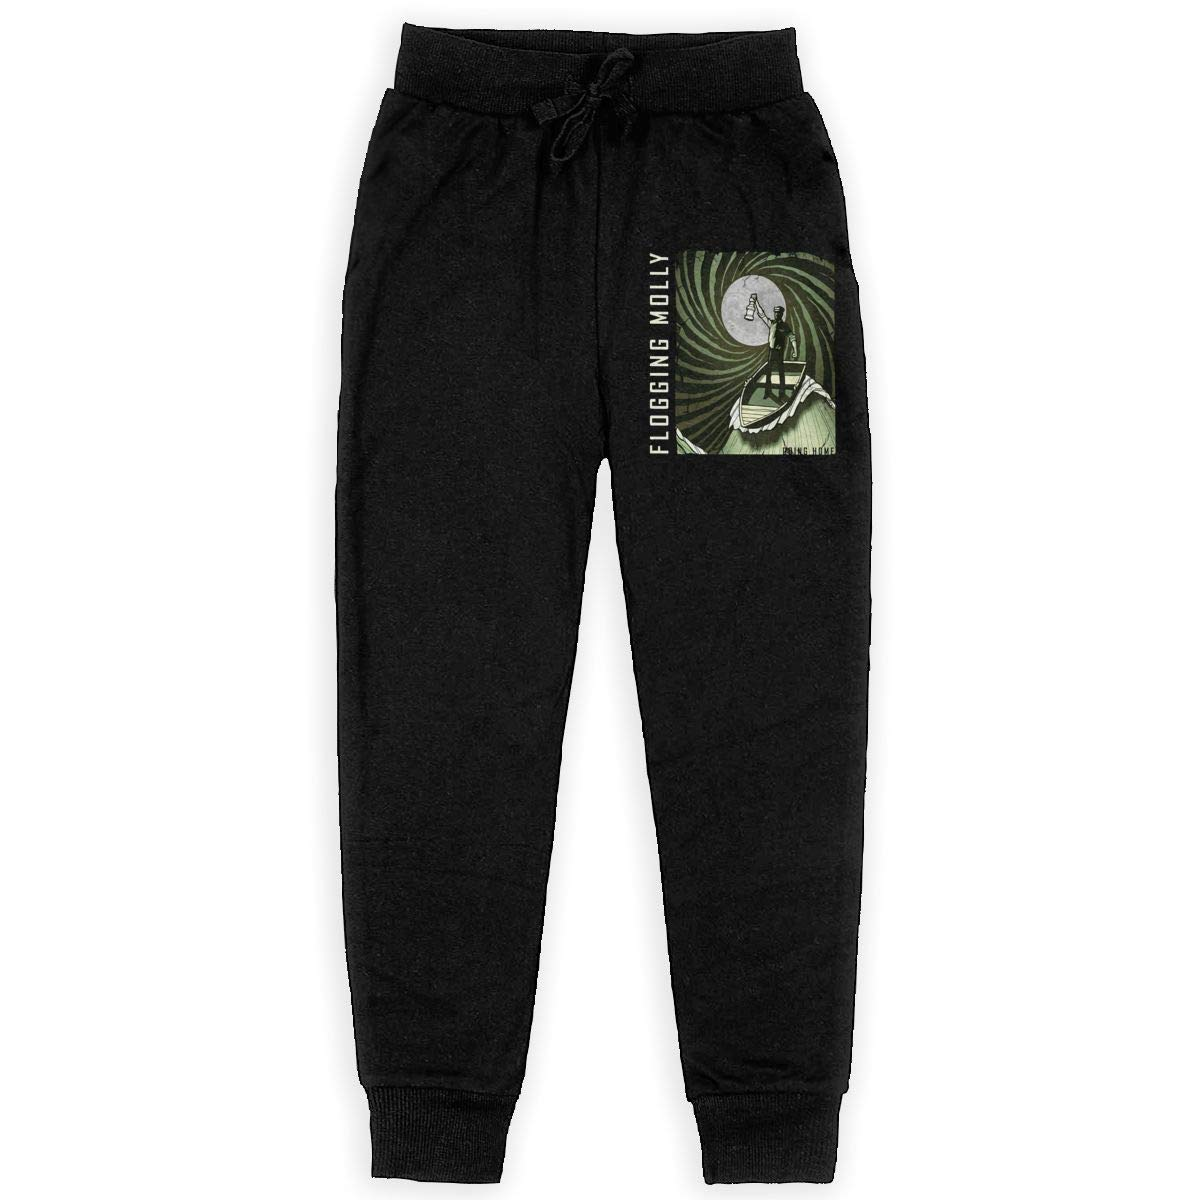 Tangzhikai Unisex Teens Flogging Molly Fashionable Music Band Fans Daily Sweatpants for Boys Gift with Pockets